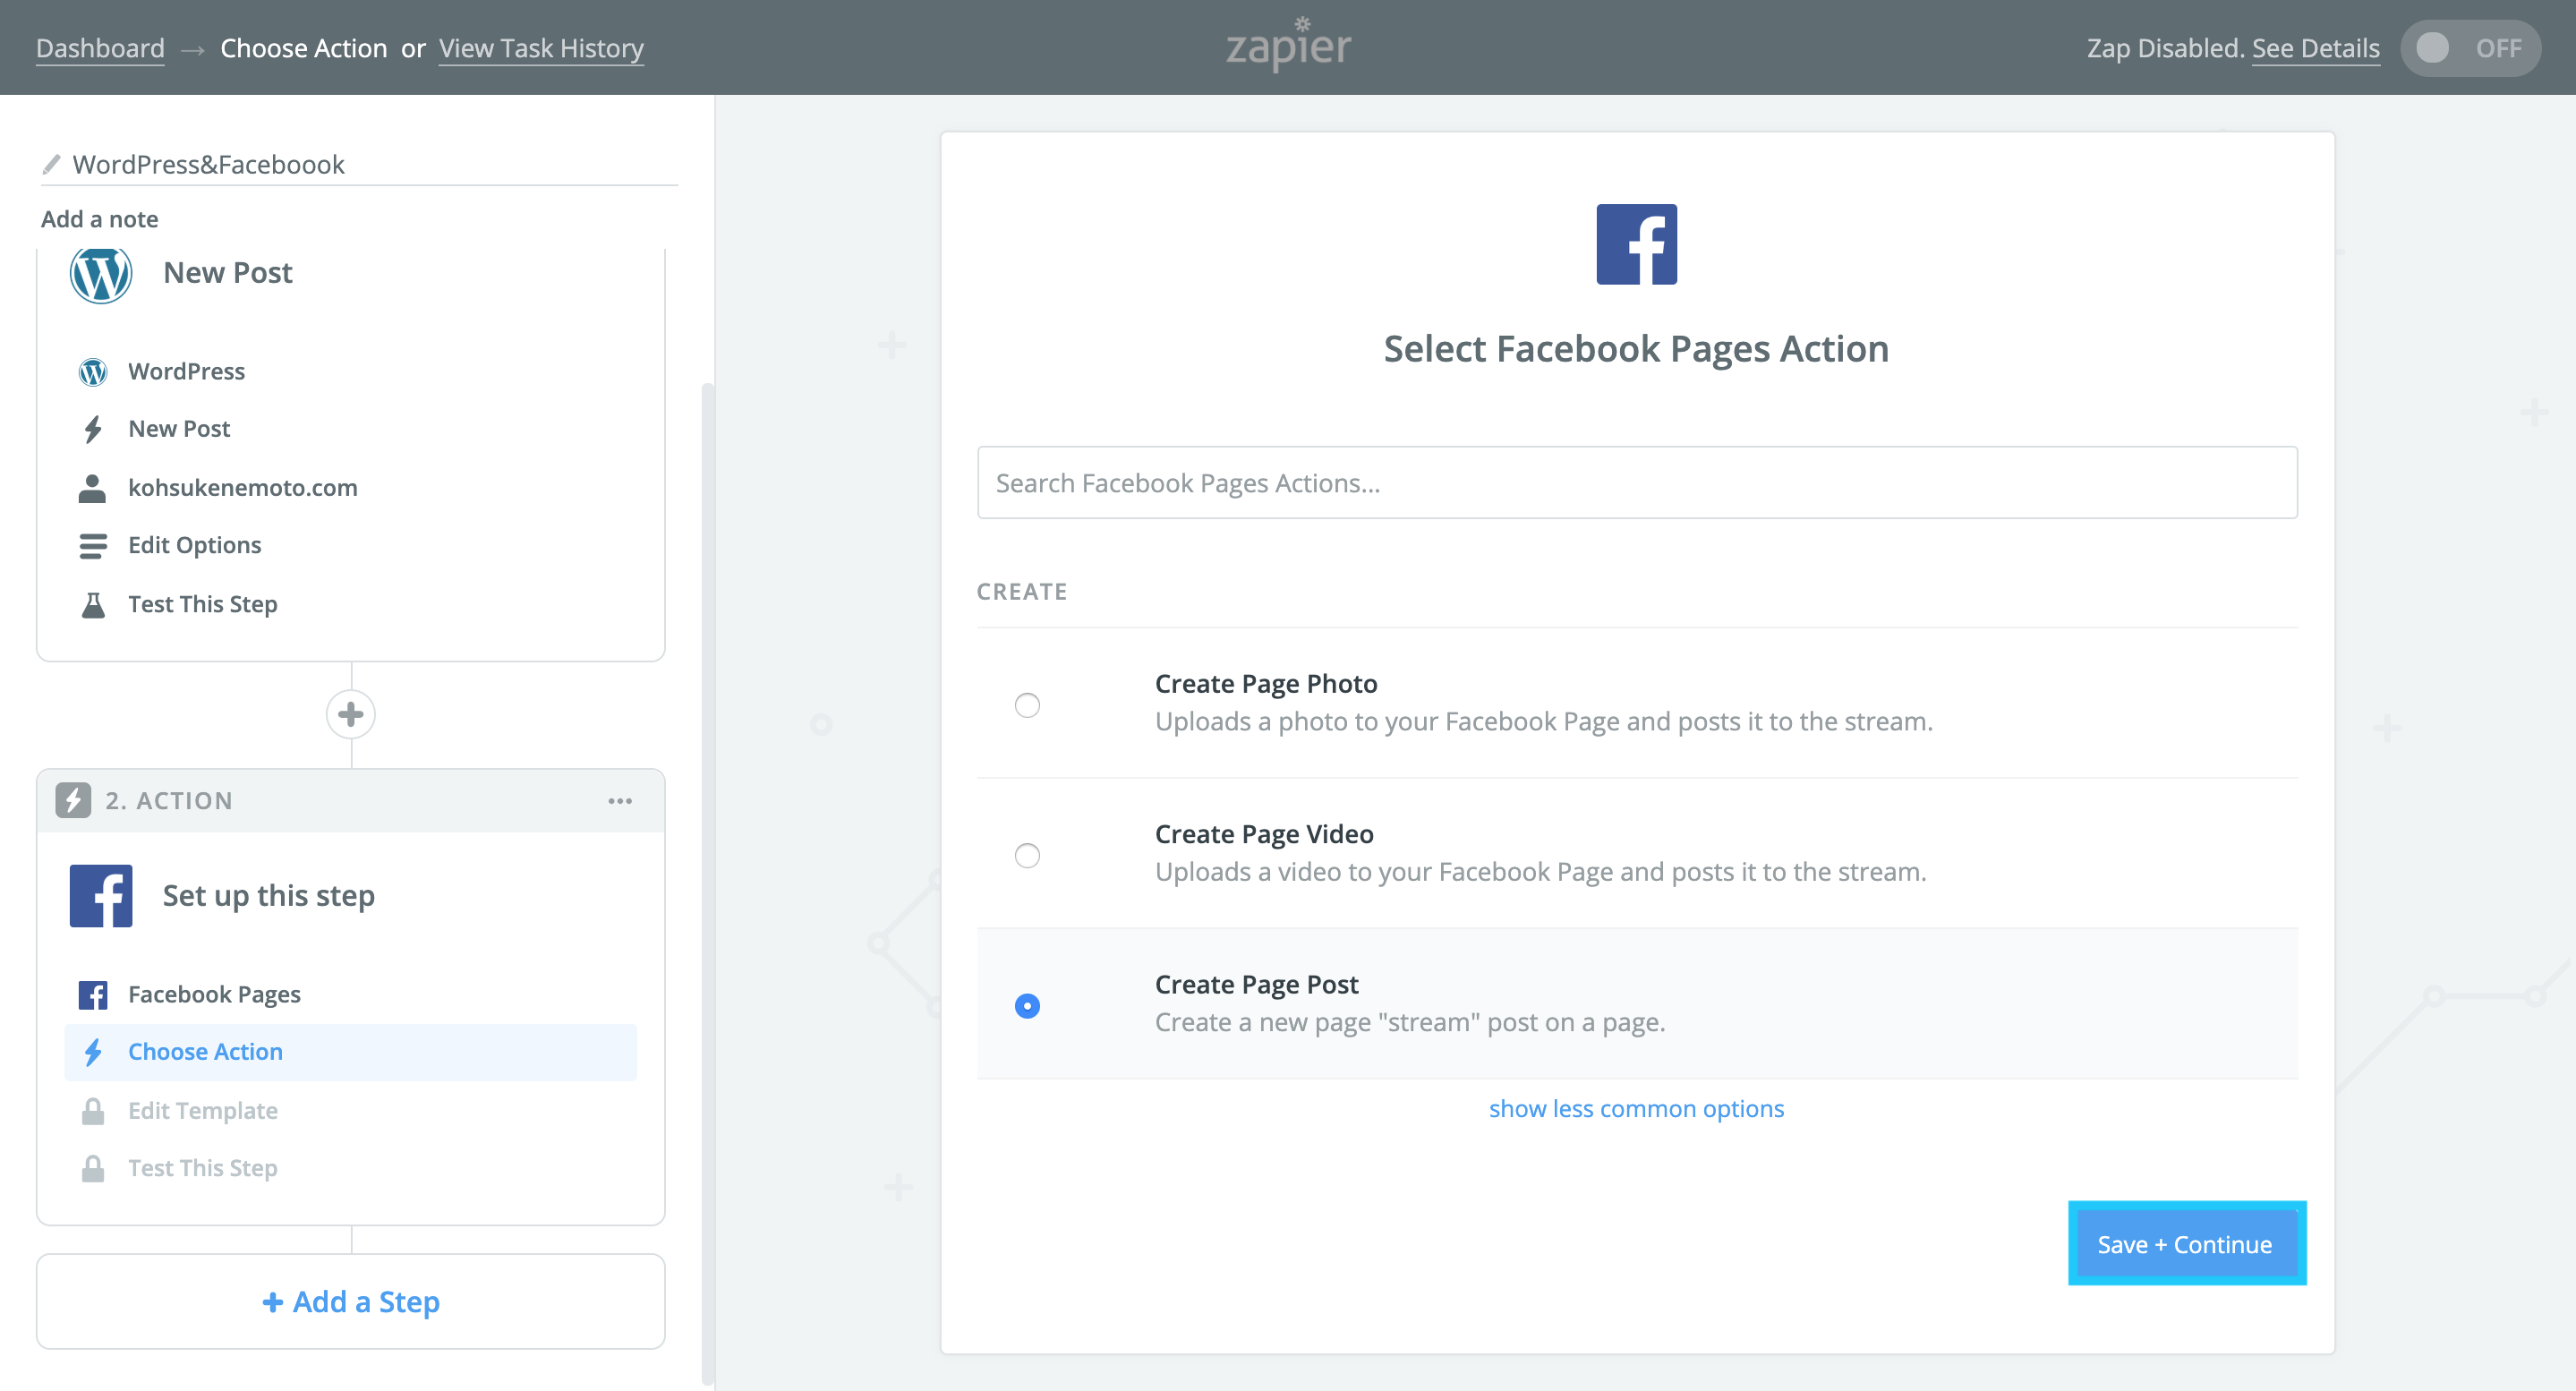 「Select Facebook Pages Action」で「Create Page Post」を選択する